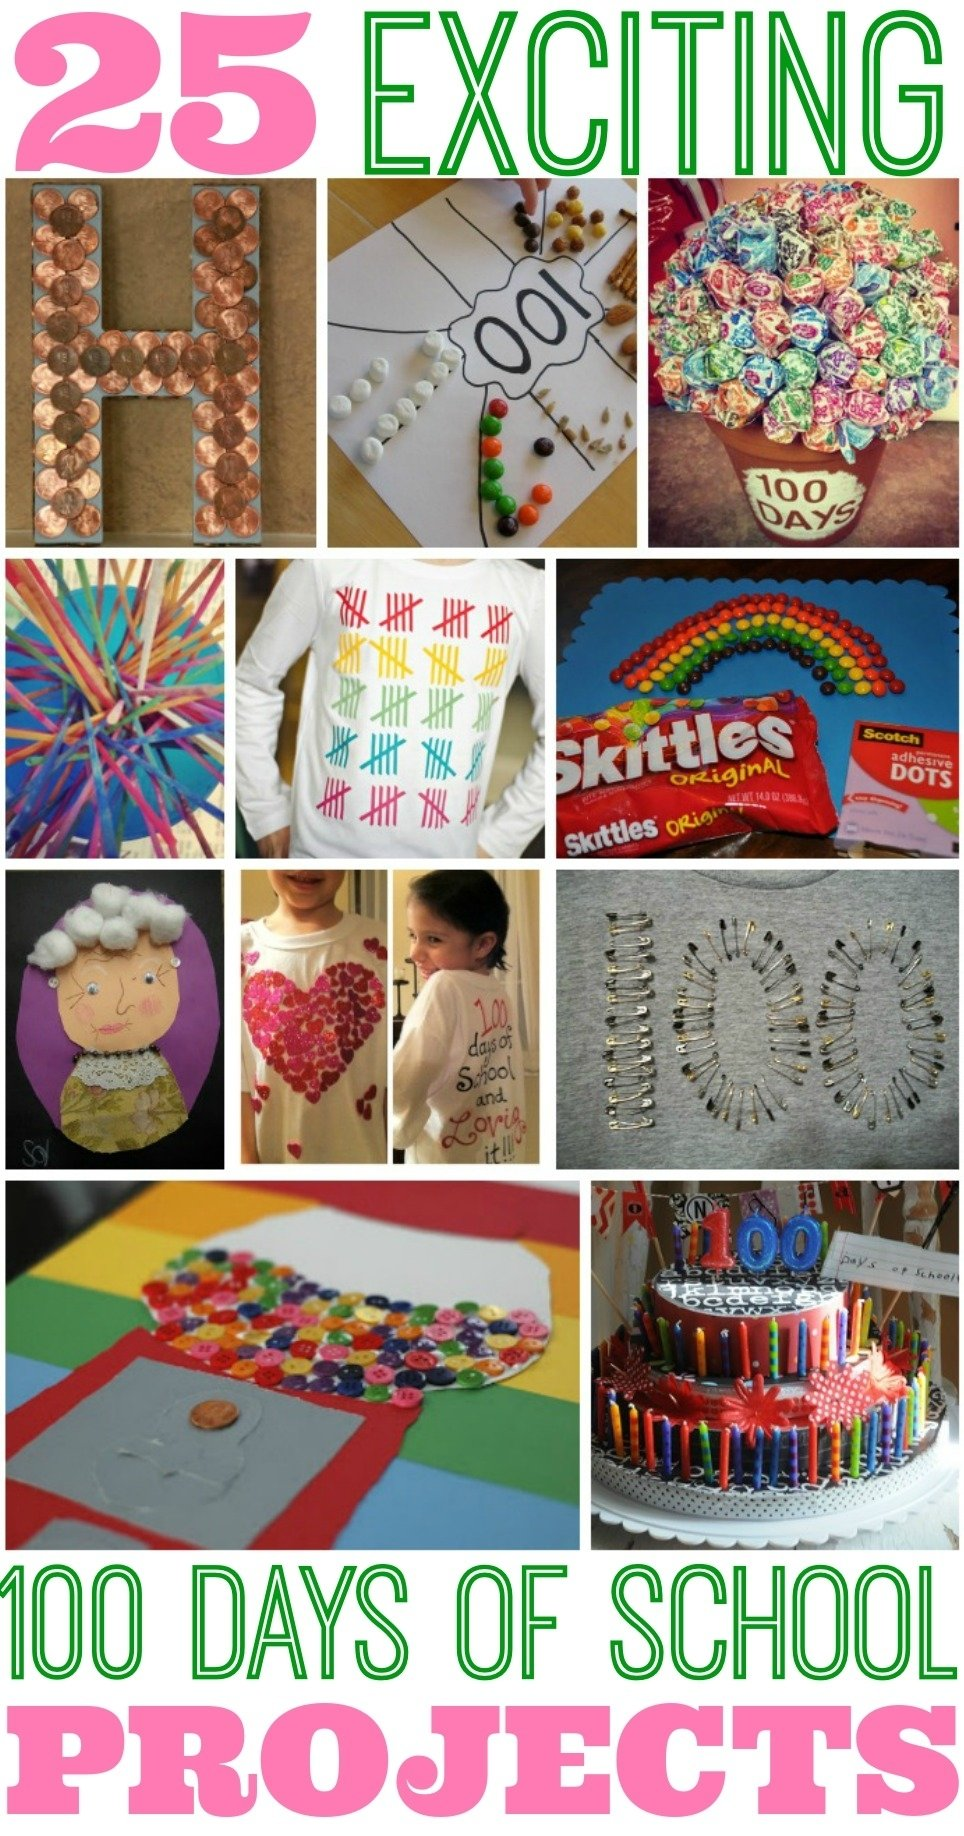 10 Fantastic 100 Days Of School Ideas best 100 days of school project ideas 1 2020